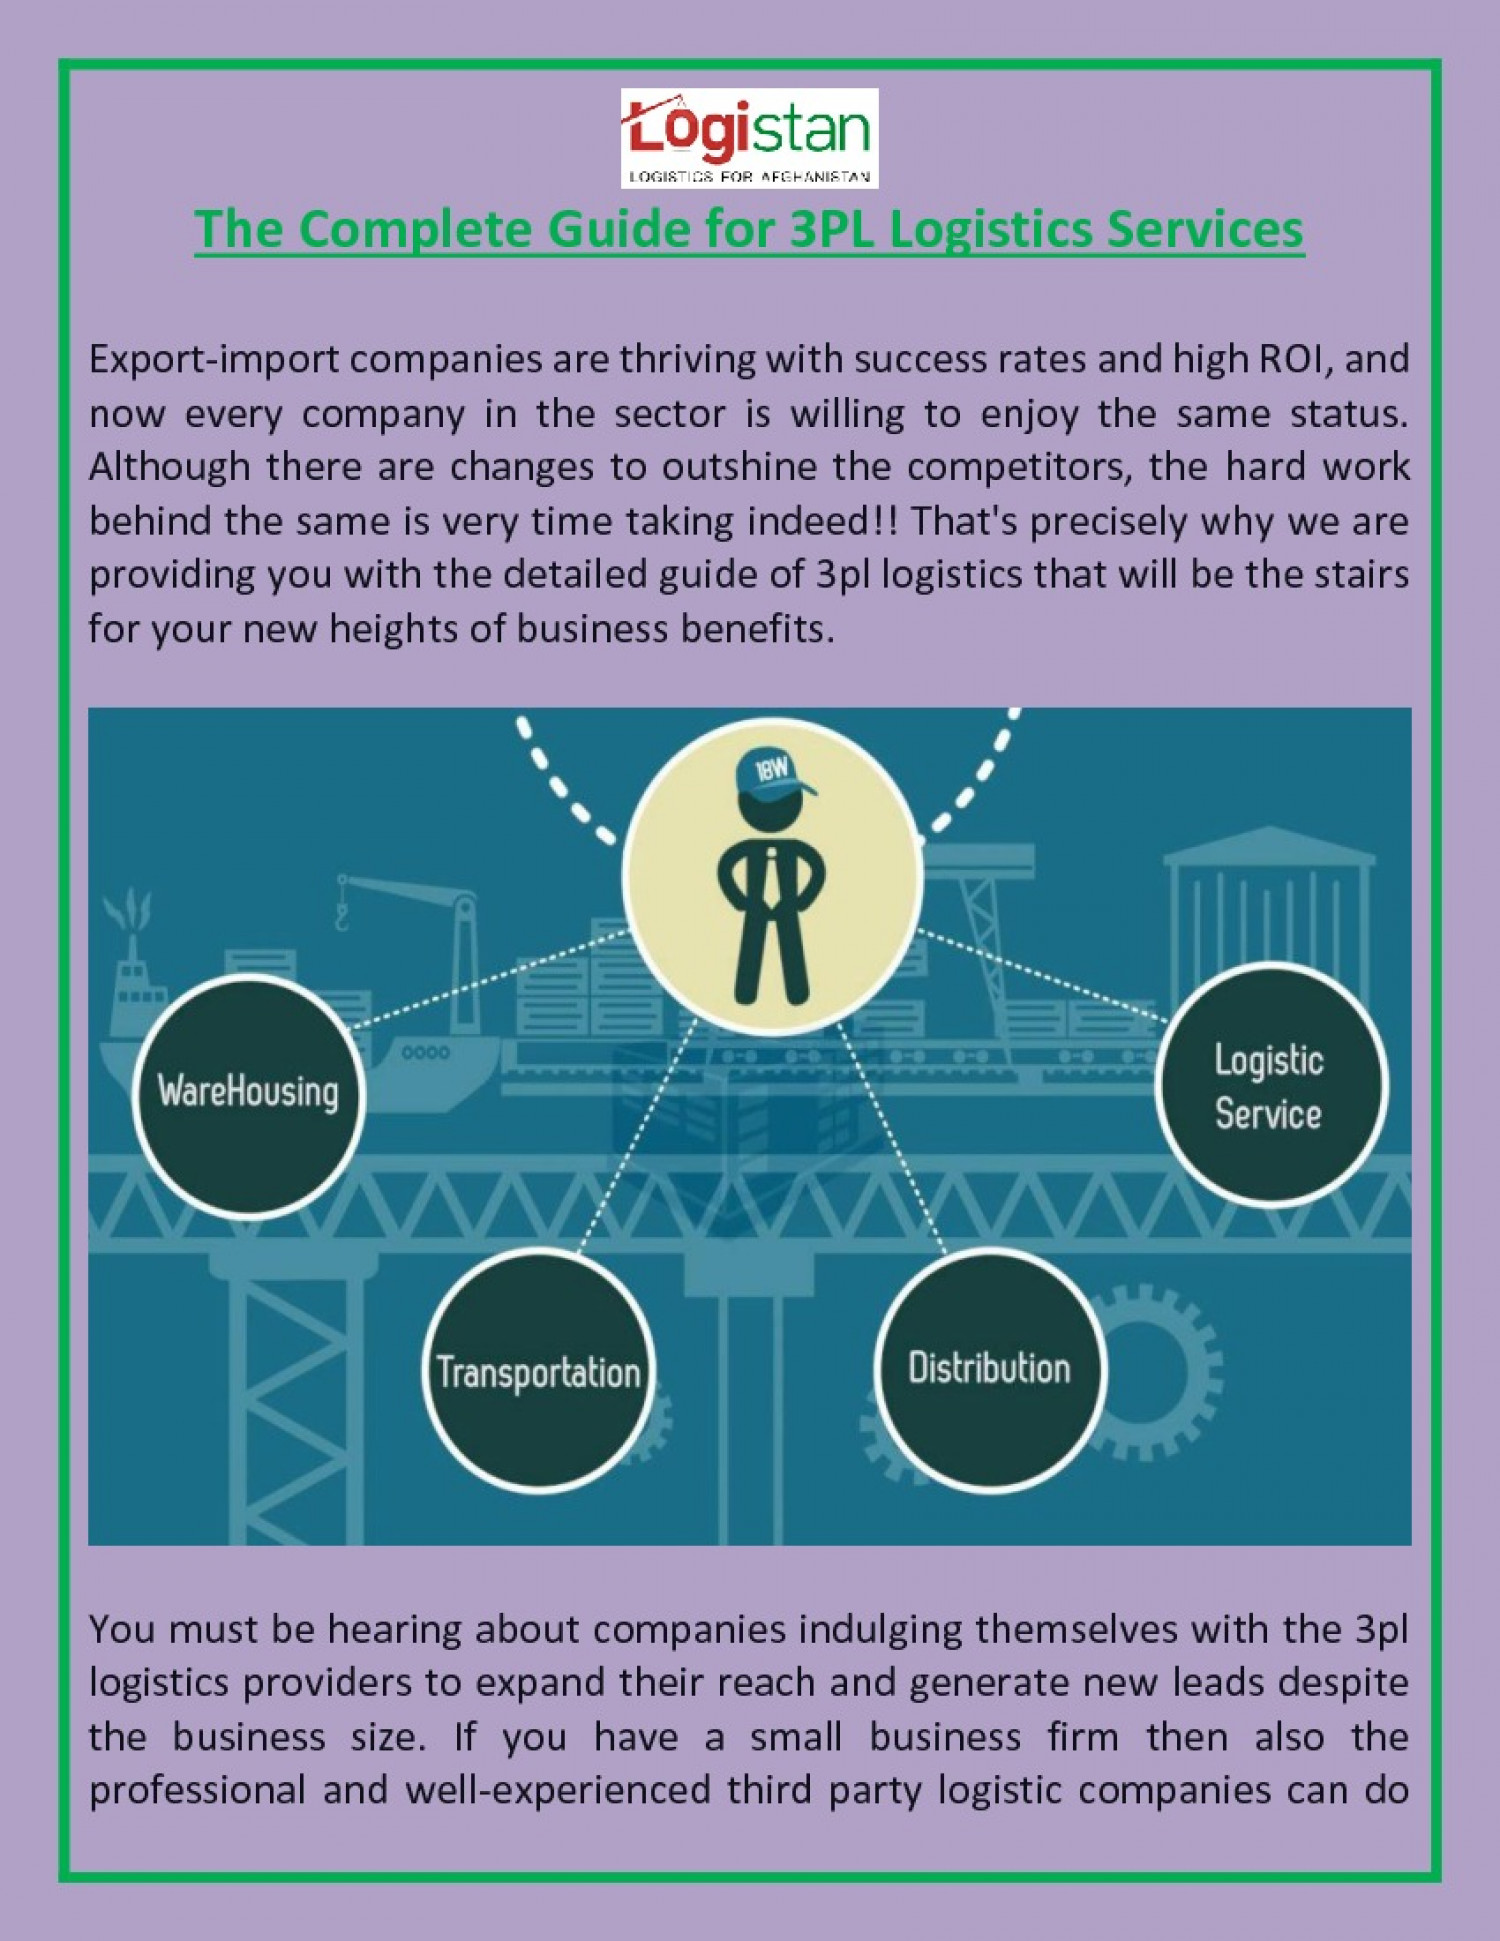 The Complete Guide for 3PL Logistics Services Infographic